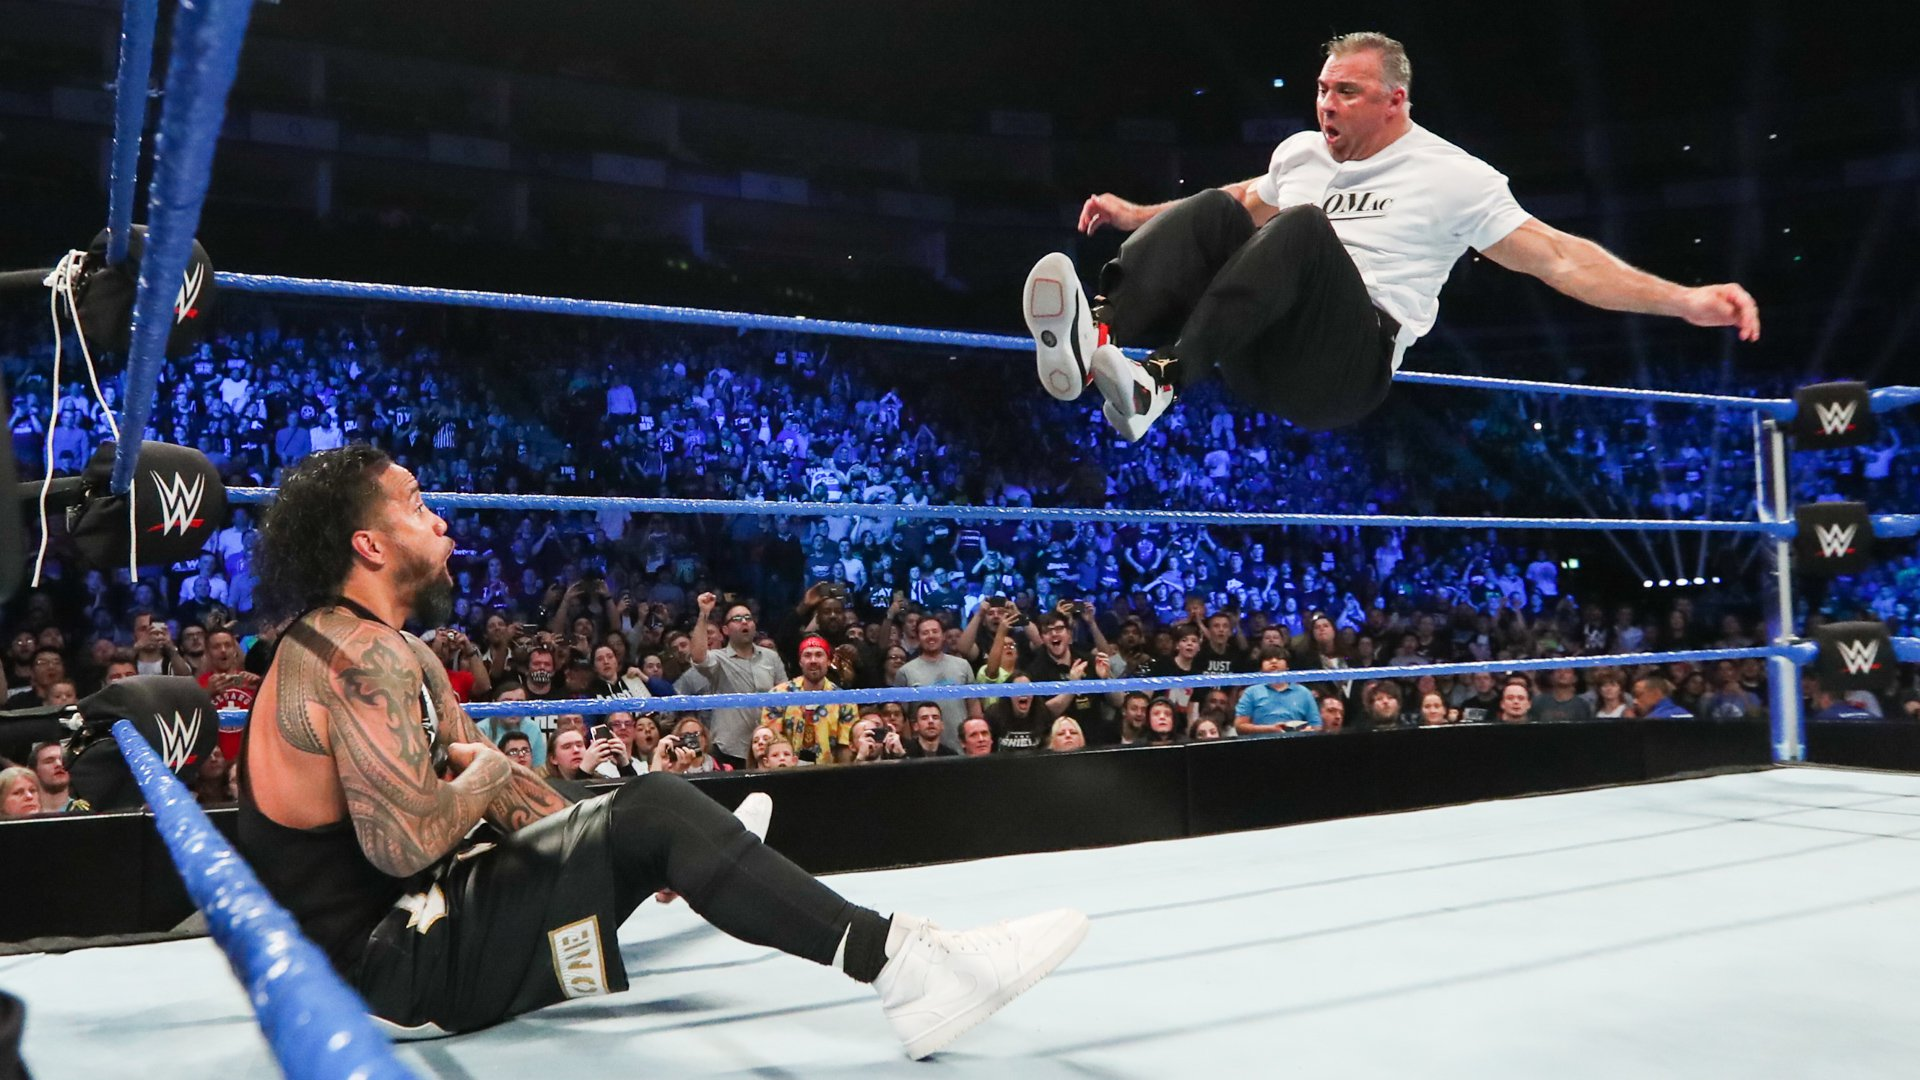 4-on-3 Handicap Match works against Reigns & Usos: Wal3ooha, 16 May, 2019